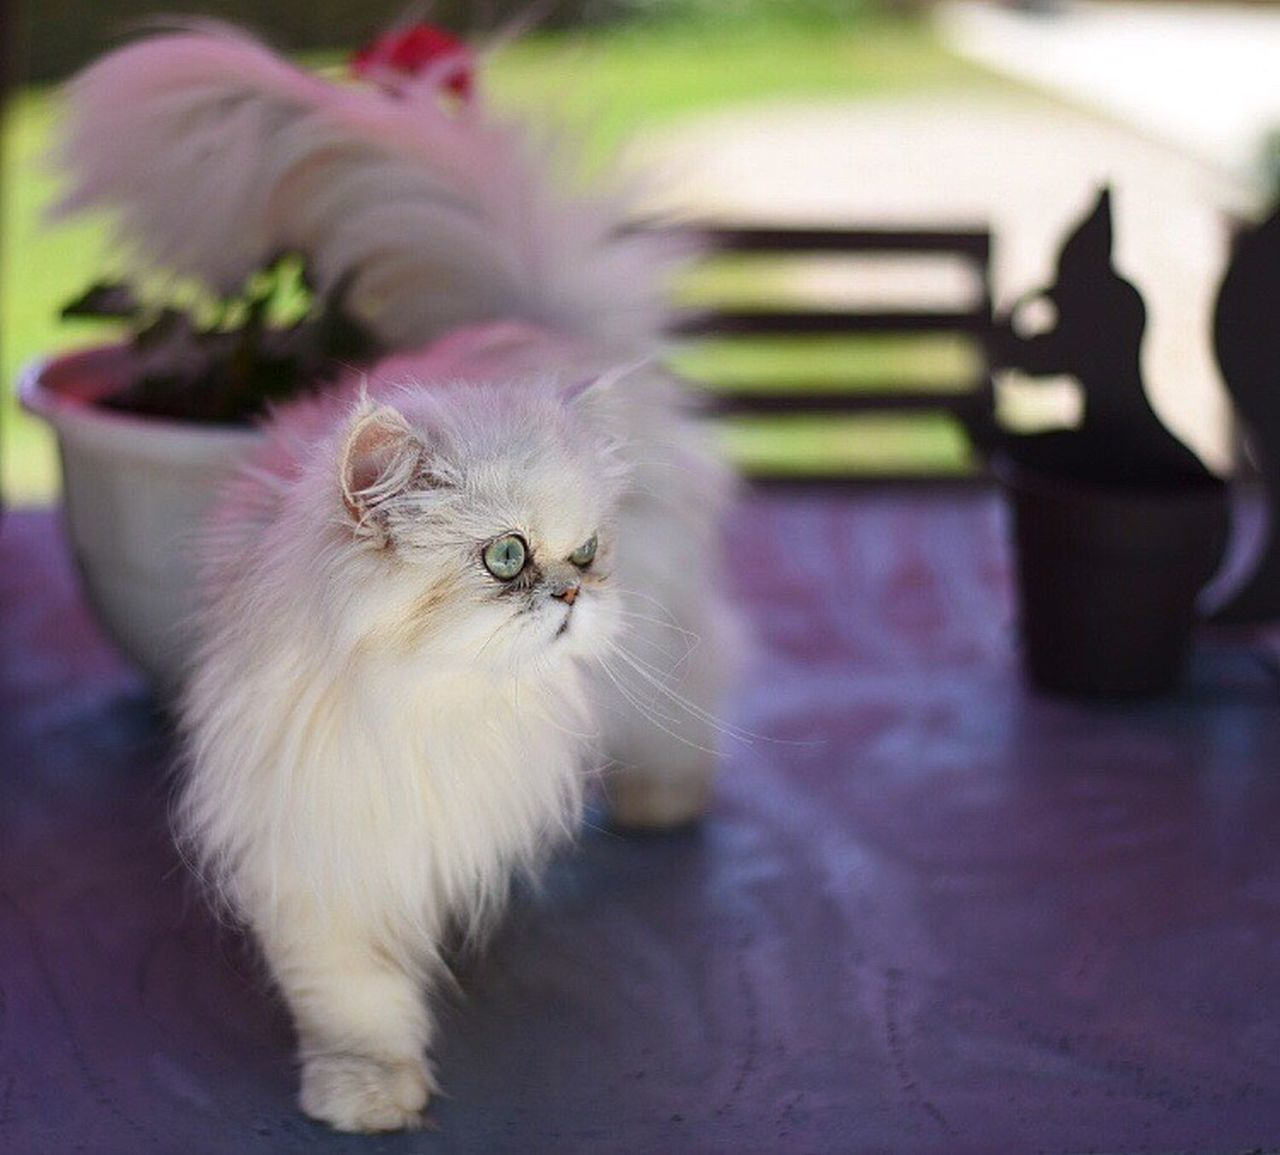 Maya Domestic Cat Pets Feline Domestic Animals Persian Cat  Kitten One Animal